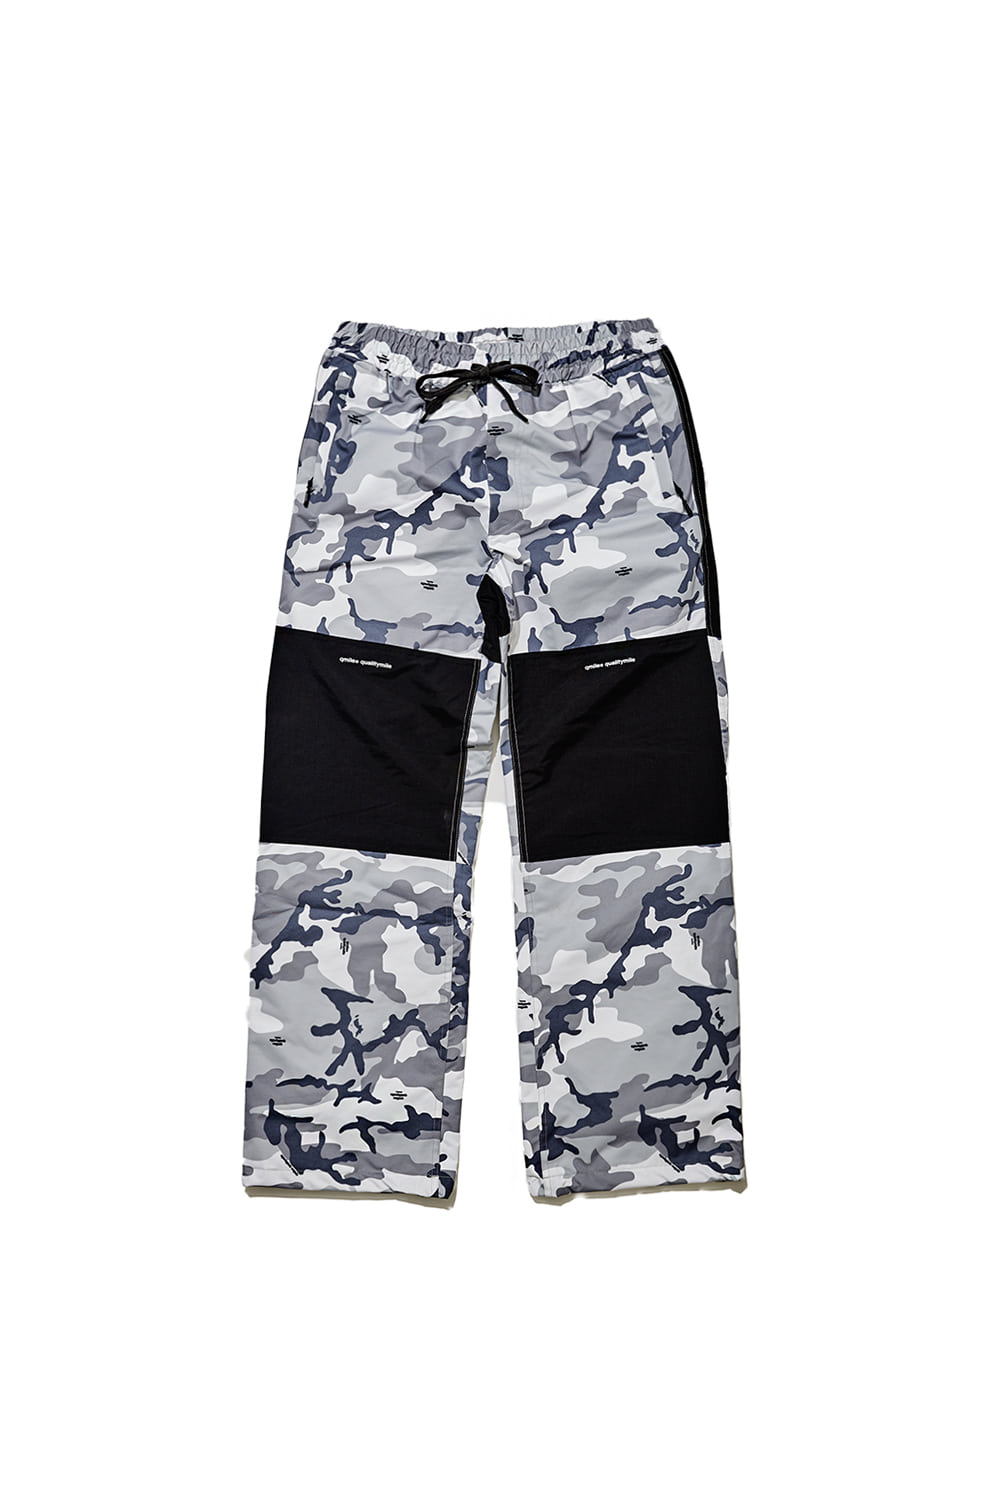 HARD TARINING PANTS | GREY CAMOUFLAGE